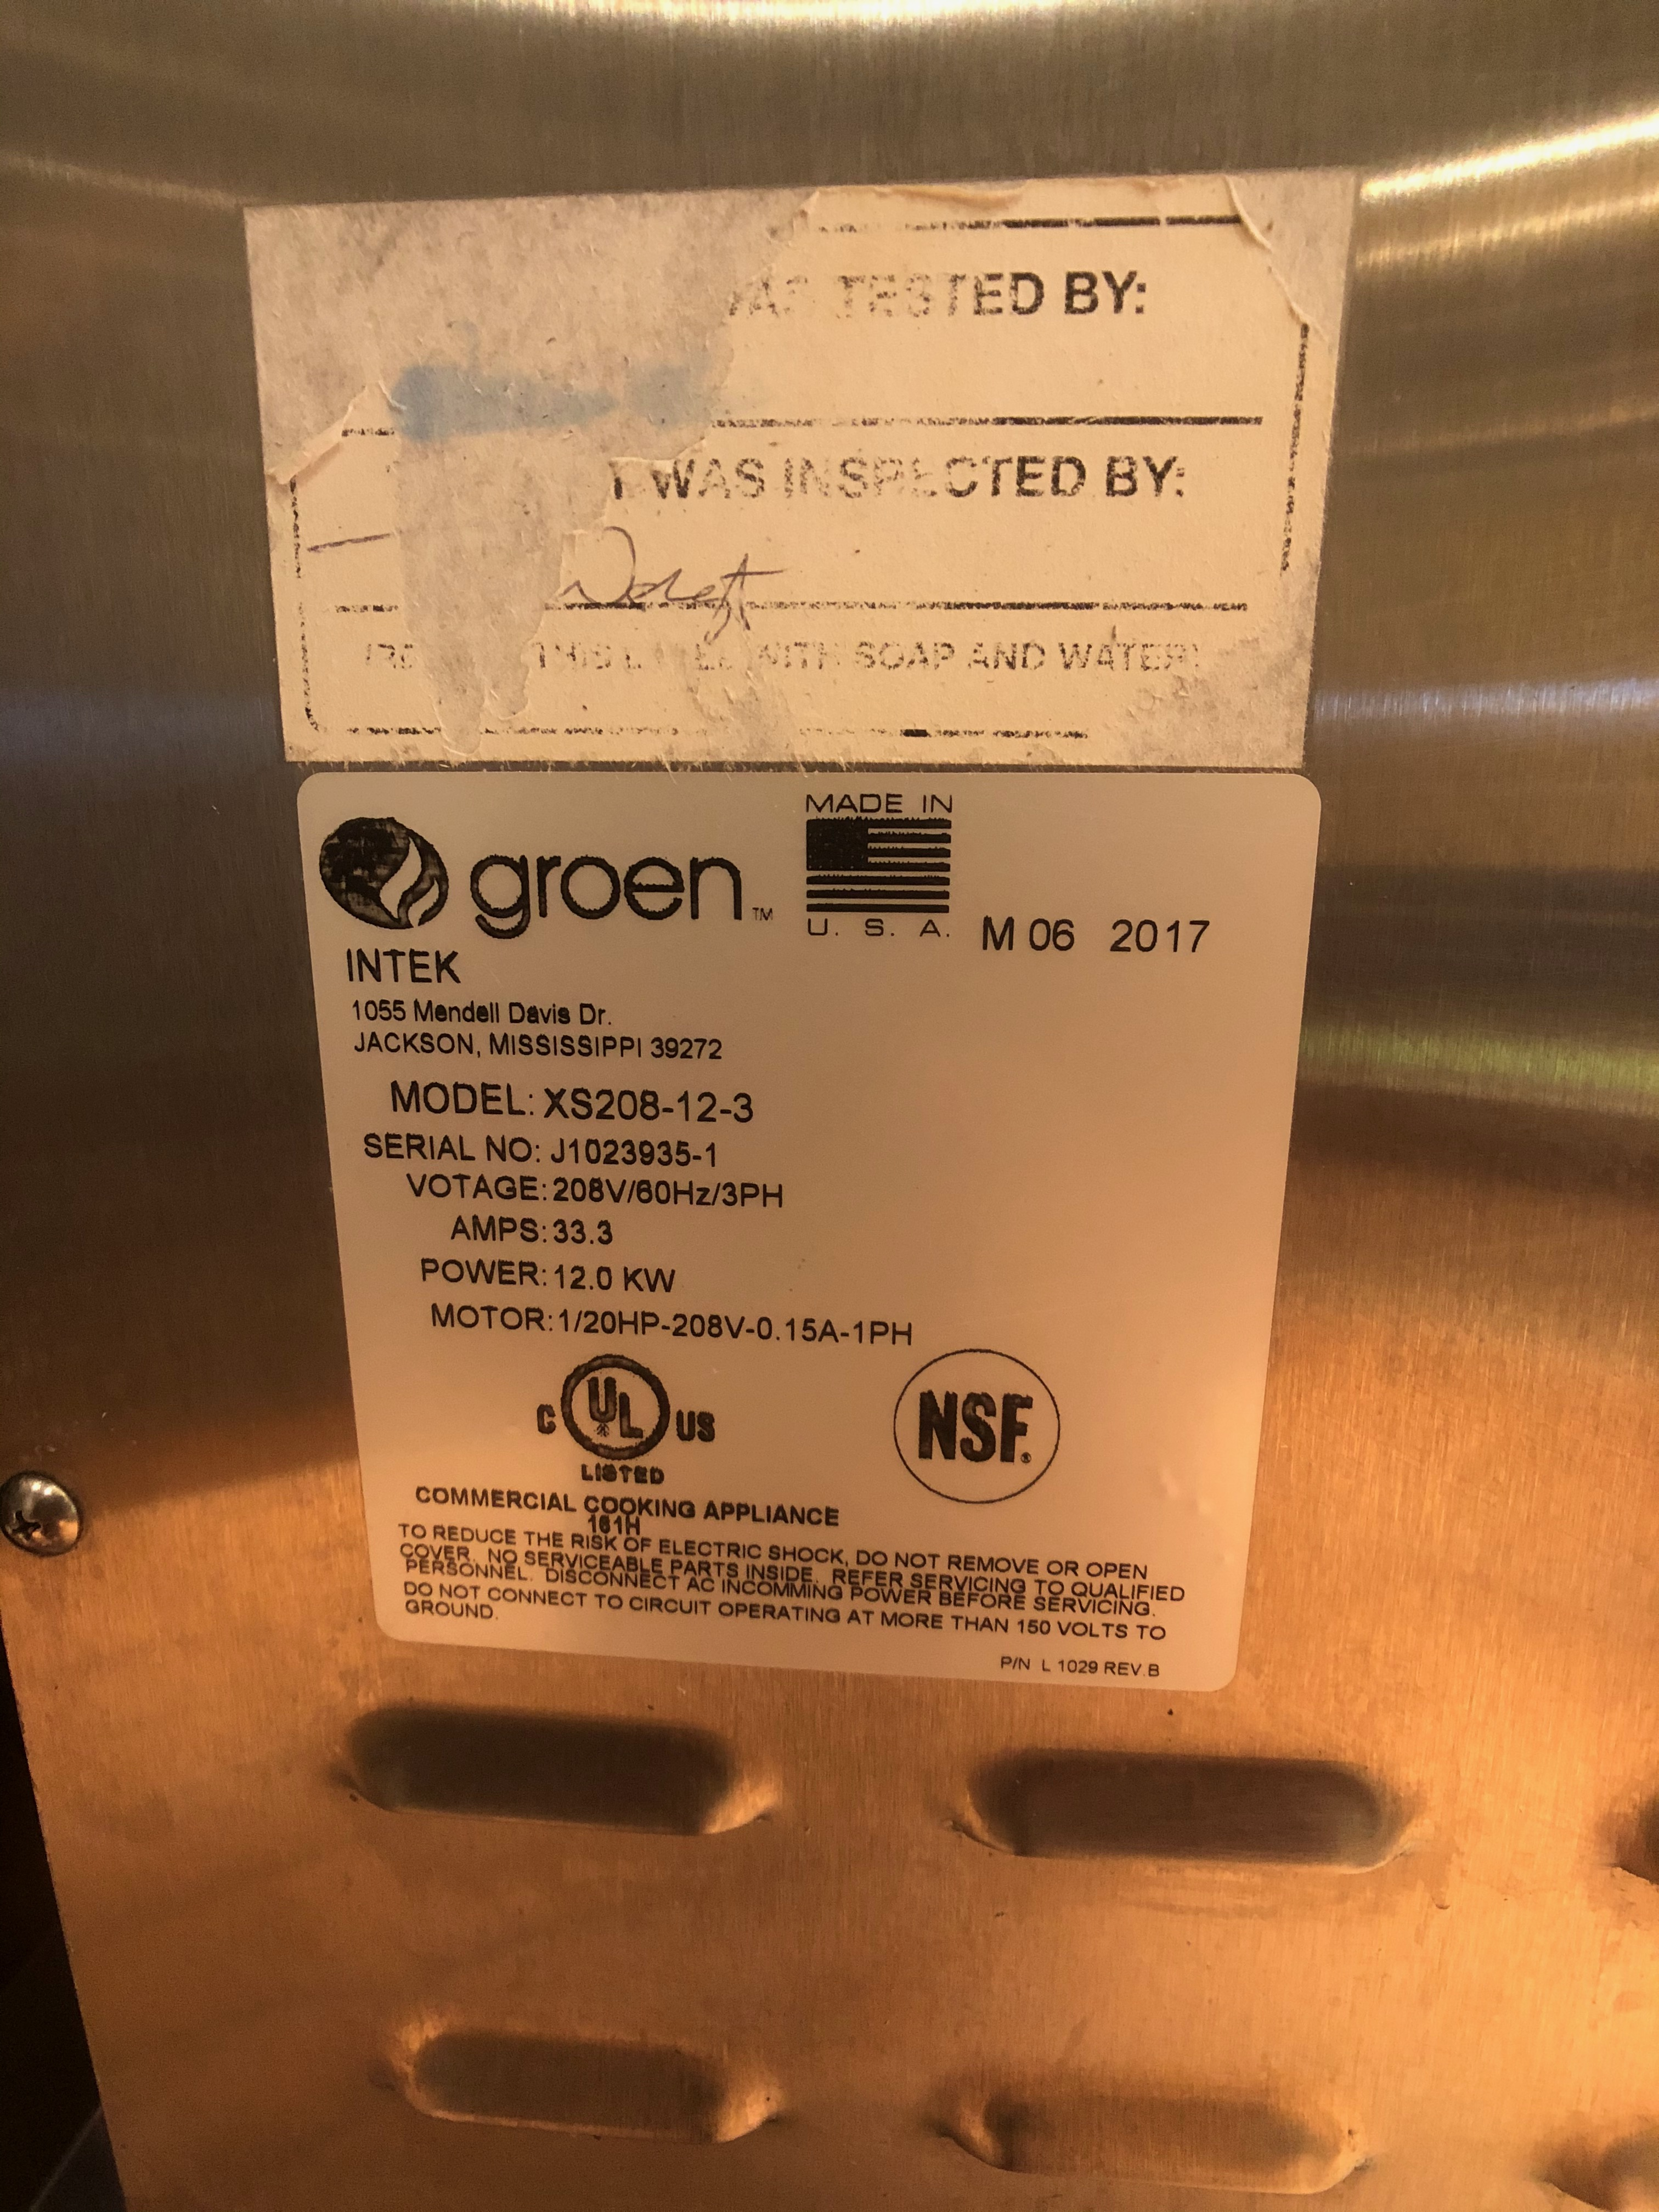 """Groen (6) Pan Countertop Convection Steamer, Model XS-208-12-3, S/N J1023935-1, Holds (6) 12"""" x - Image 7 of 7"""